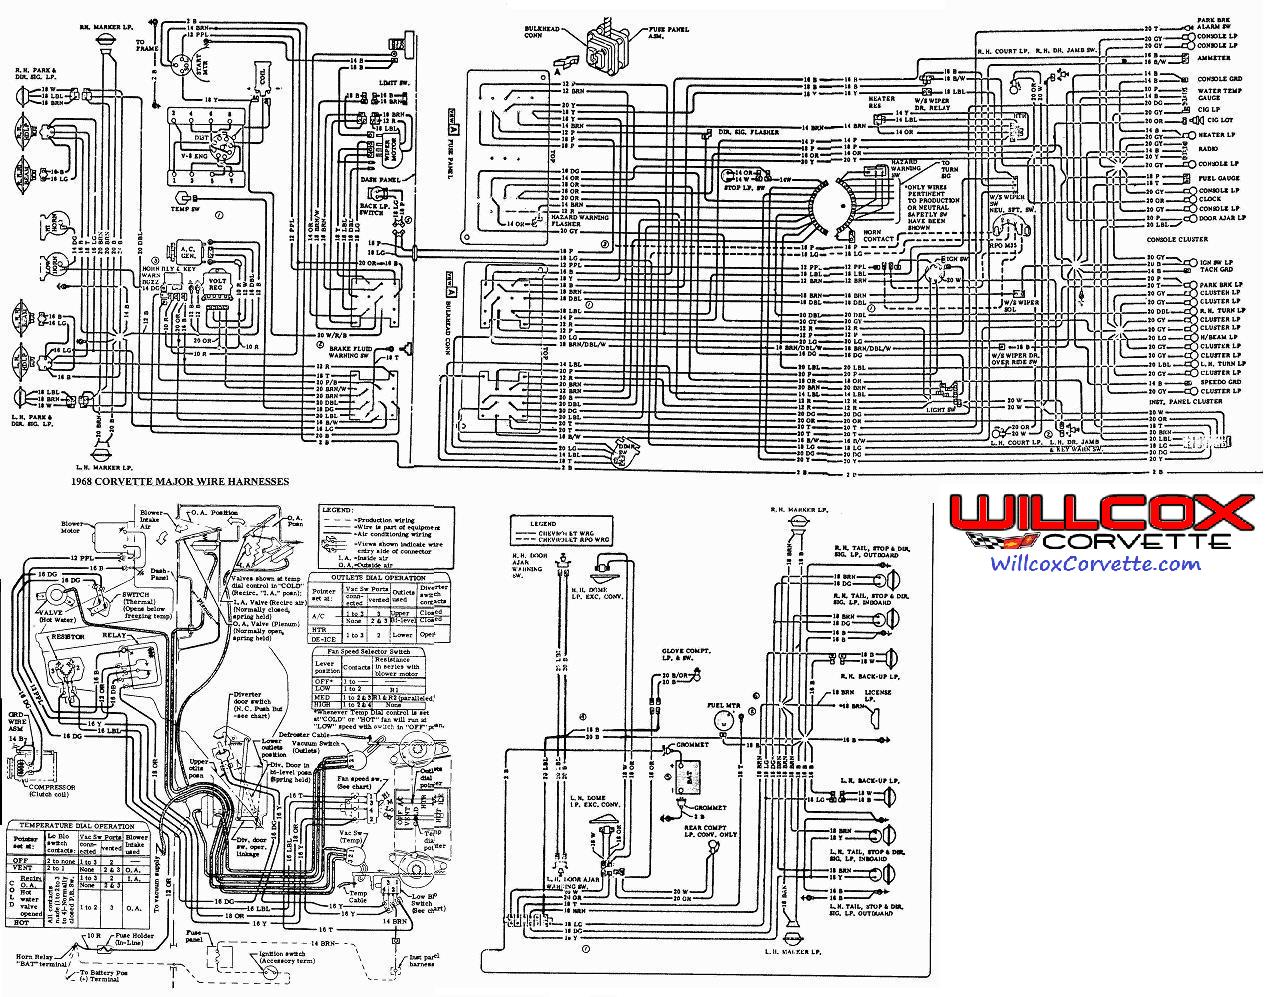 1968 Corvette Wiring Diagram Simple 1980 Engine Wire Schematic 68 From The Aim Willcox Fuse Box